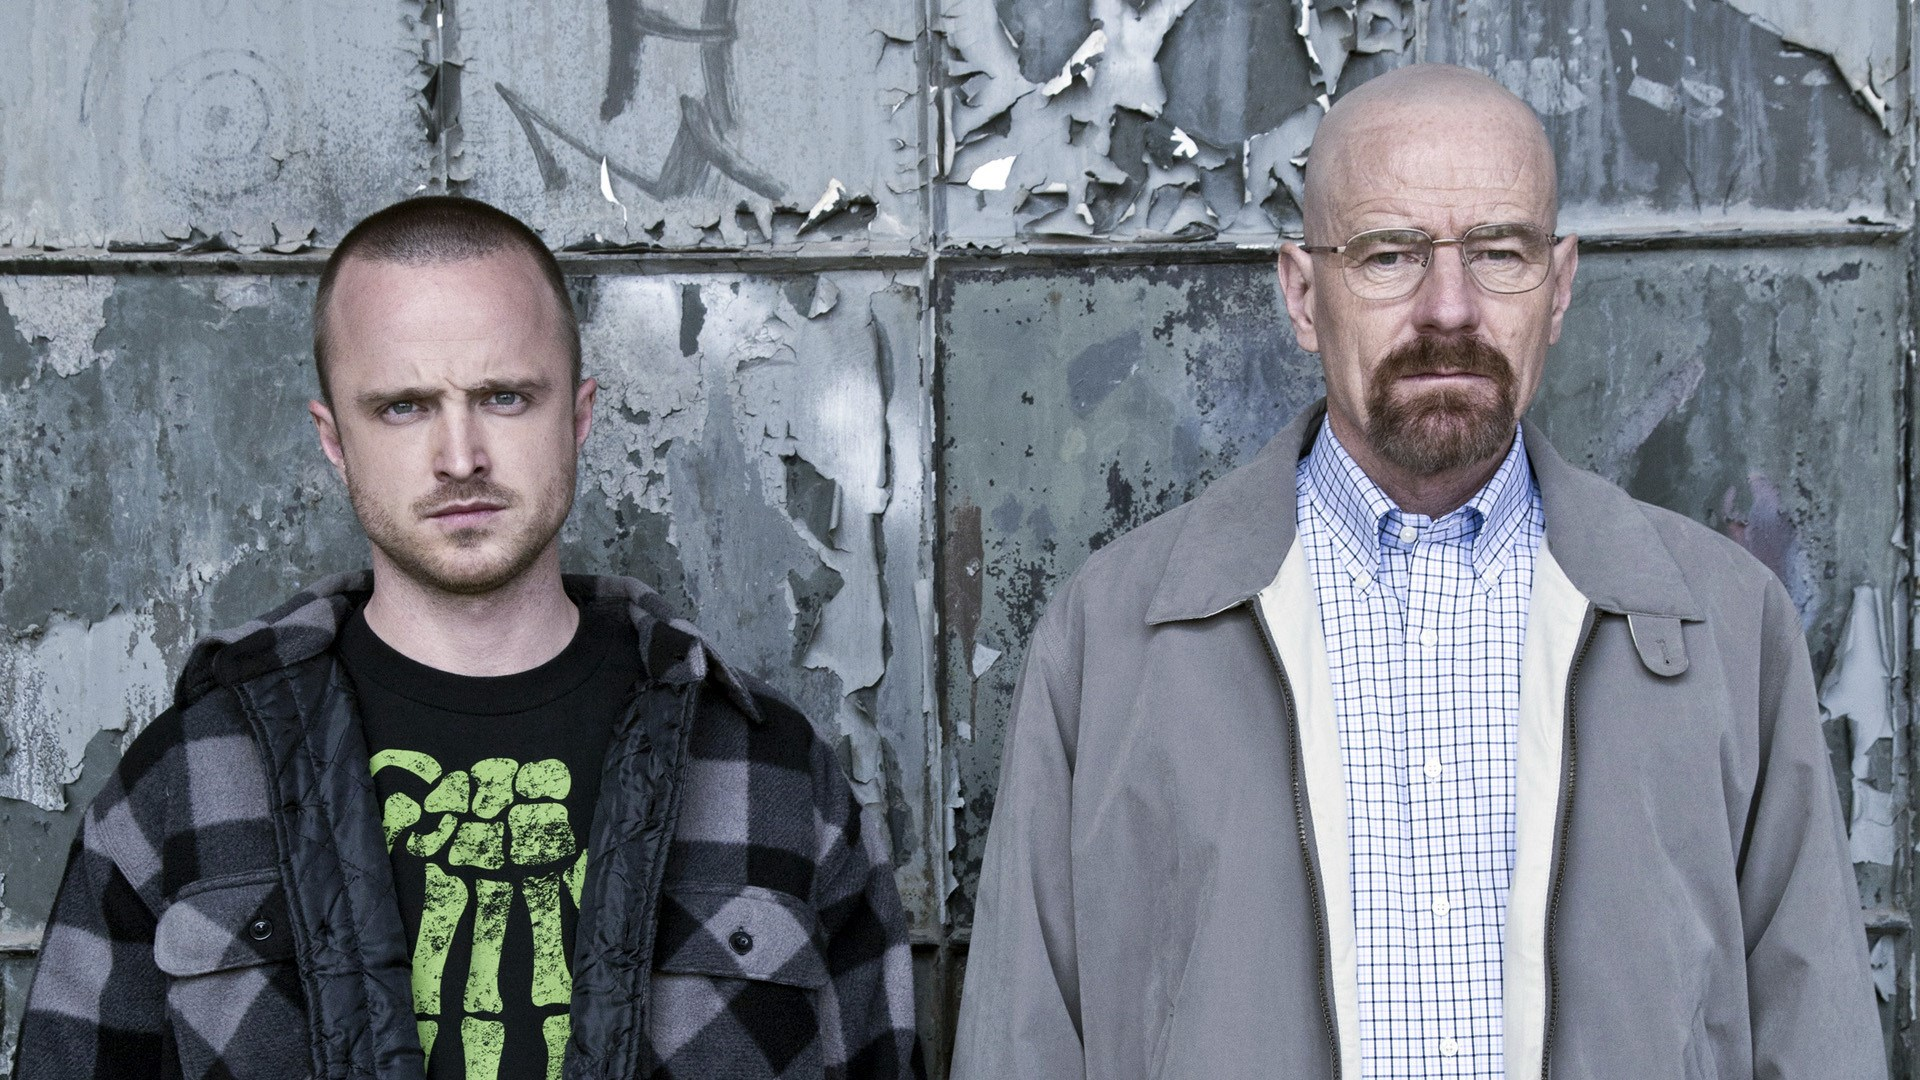 1920x1080-images-breaking-bad-wallpaper-wpc9001017